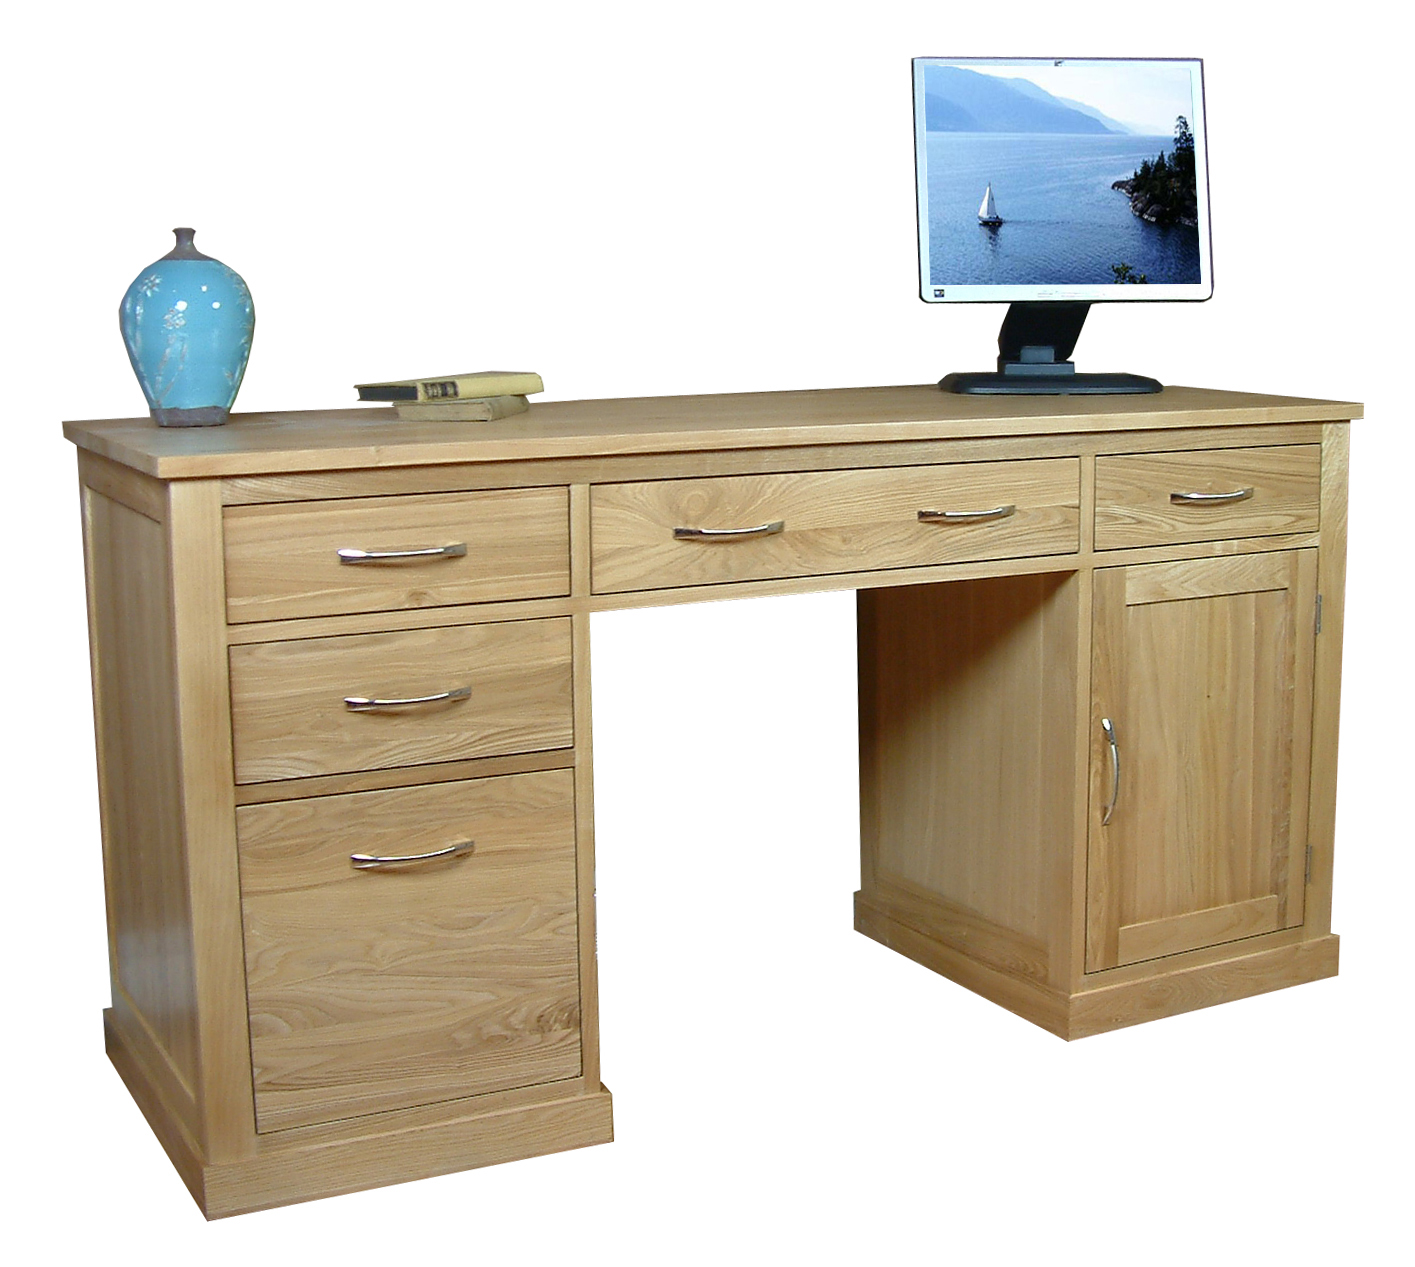 Woodworking plans sideboard build your own baby crib plans diy pdf plans firingbornei Home furniture rental indiana